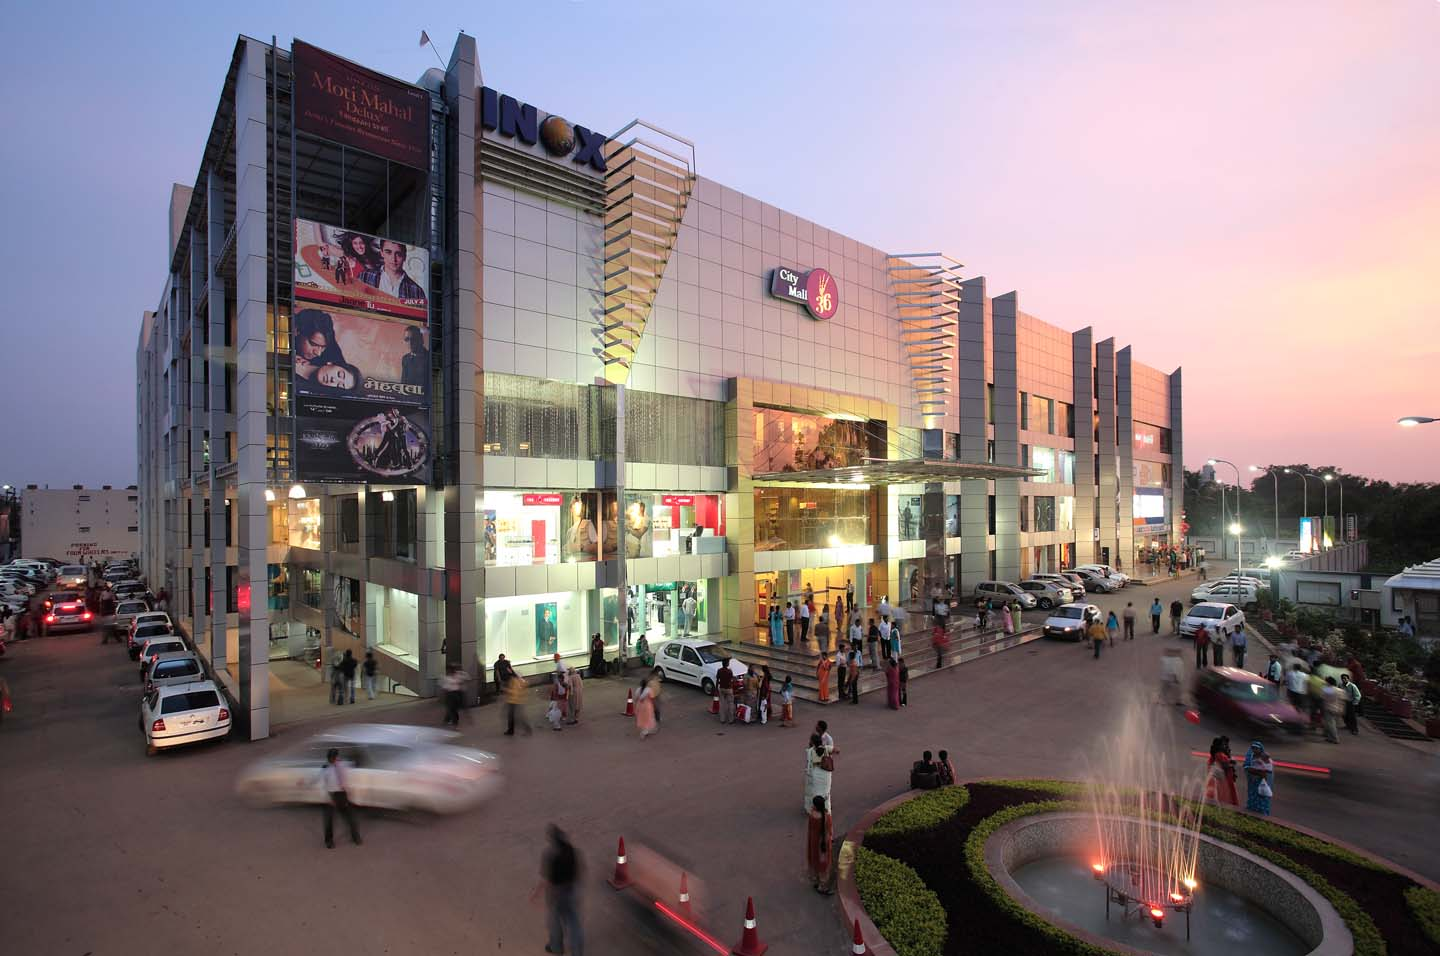 36-city-mall-raipur-chhattisgarh